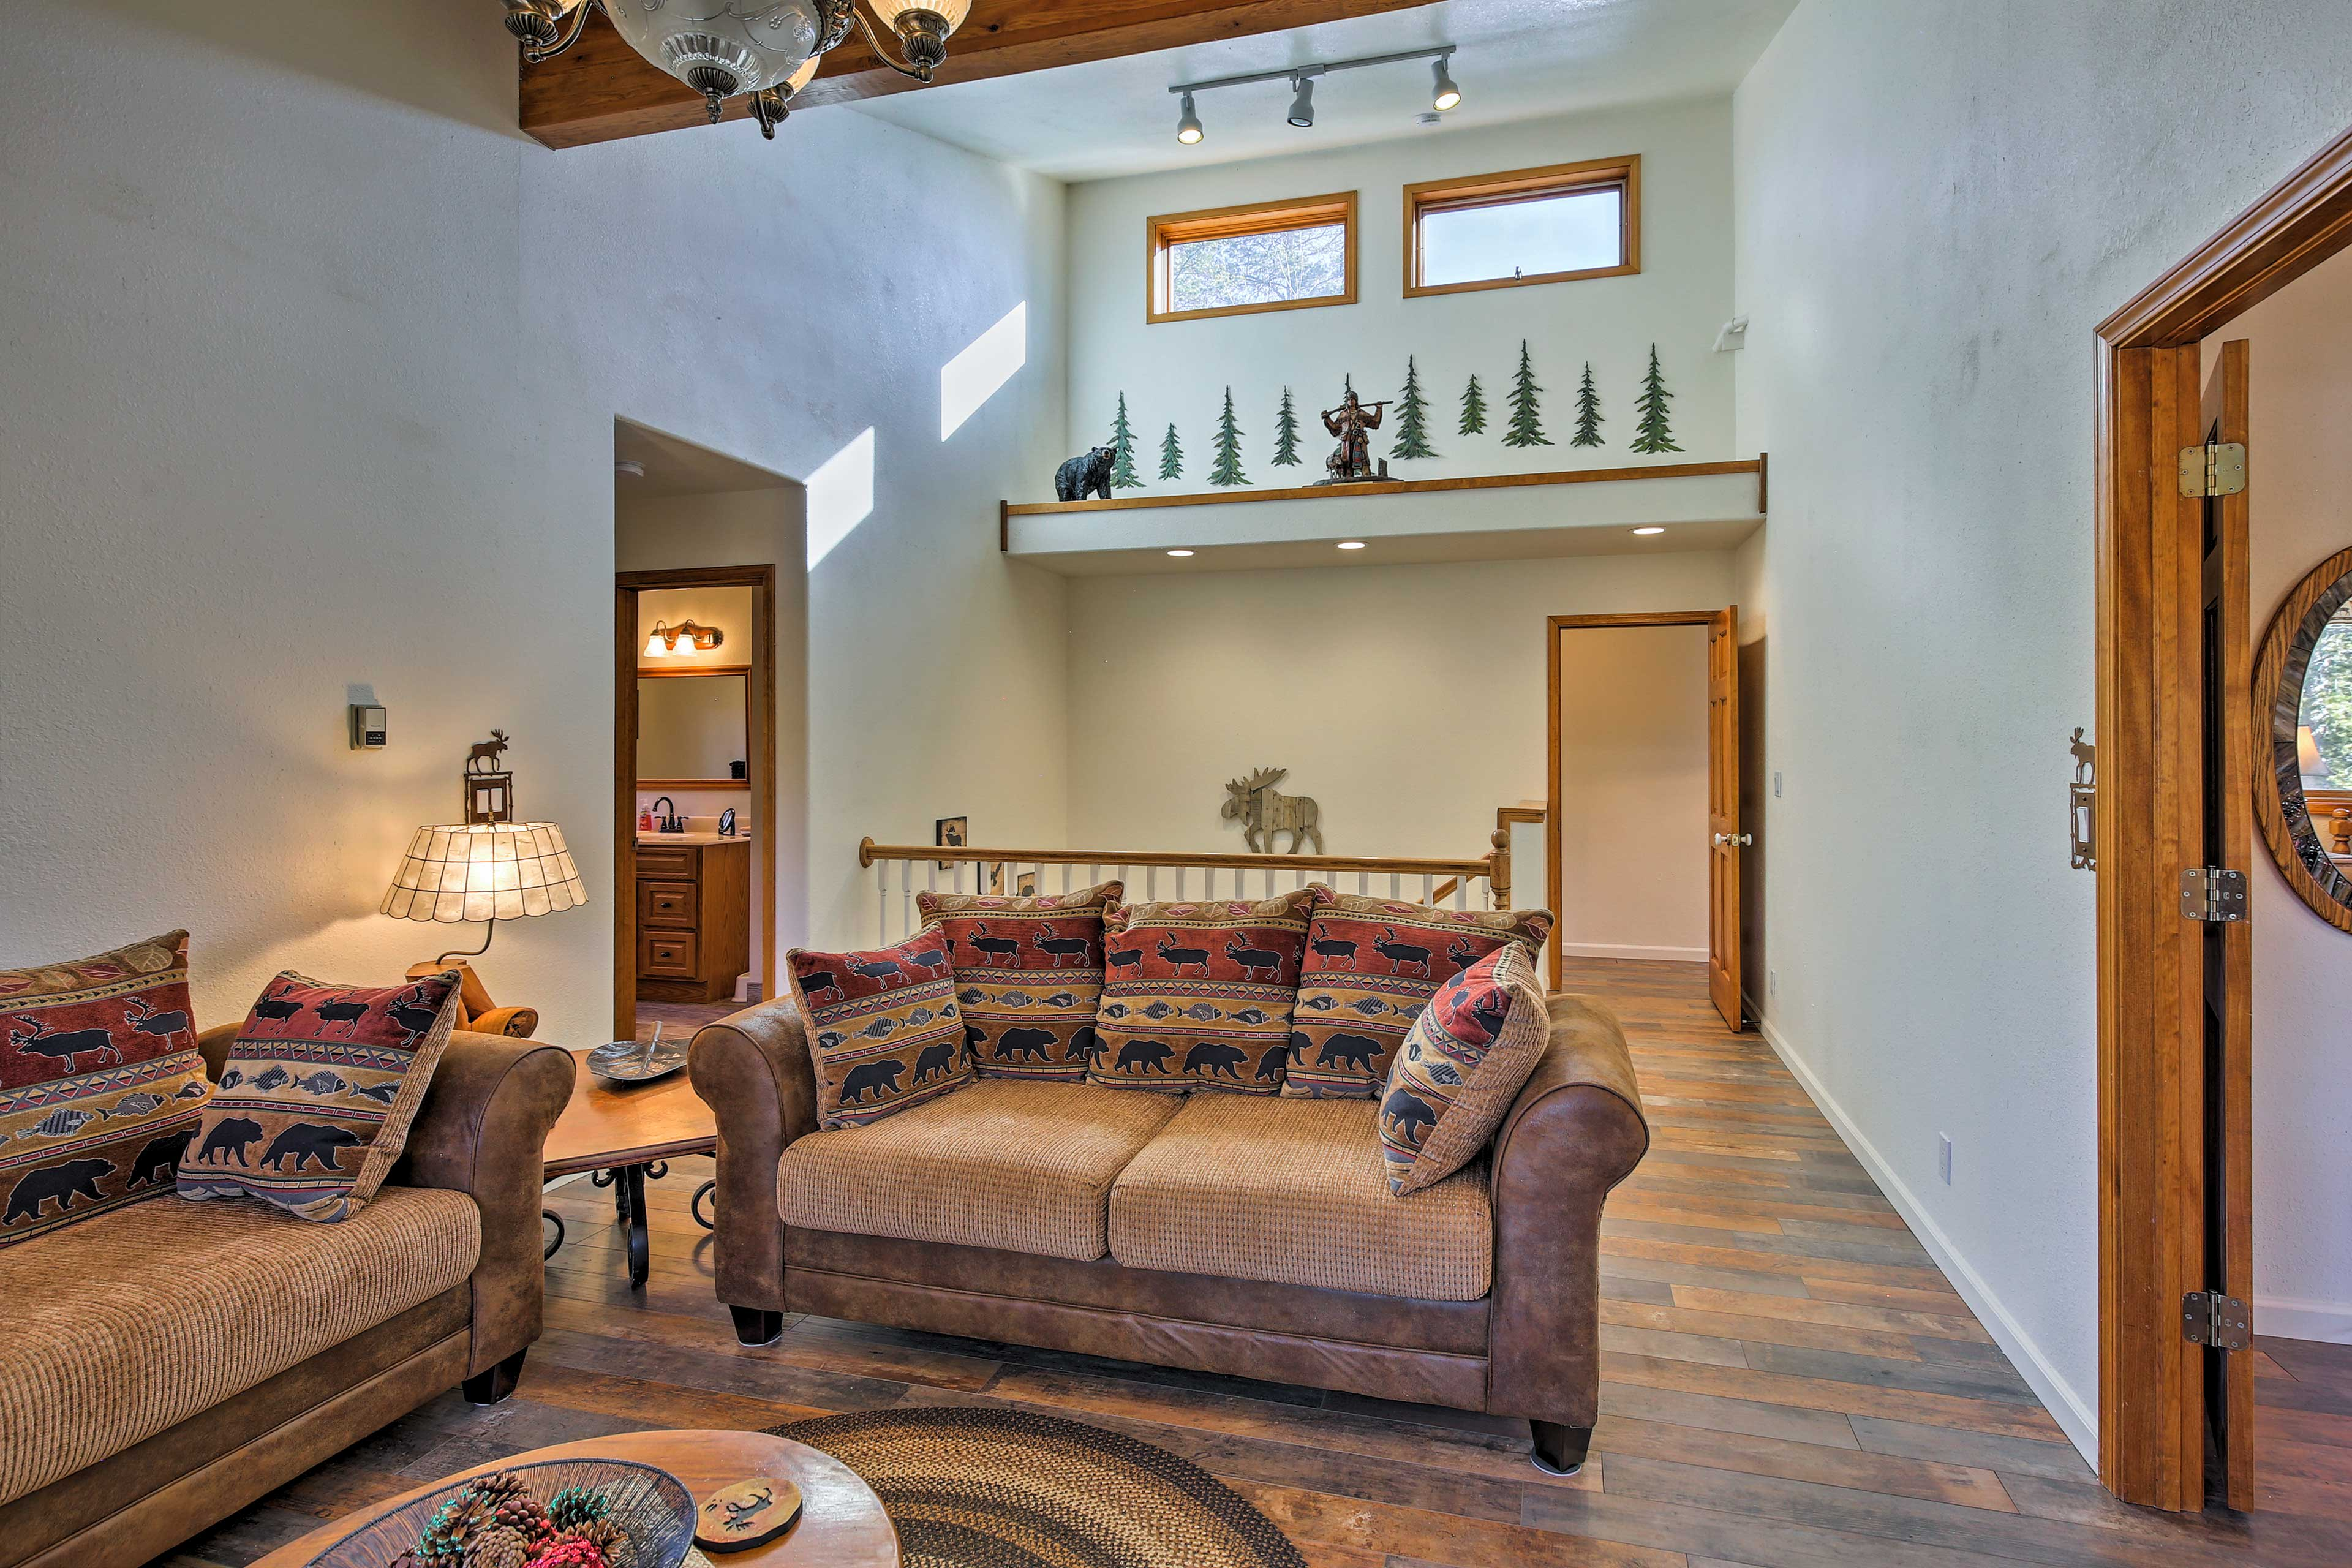 High ceilings and mountain-themed decor adorn the upstairs living space.